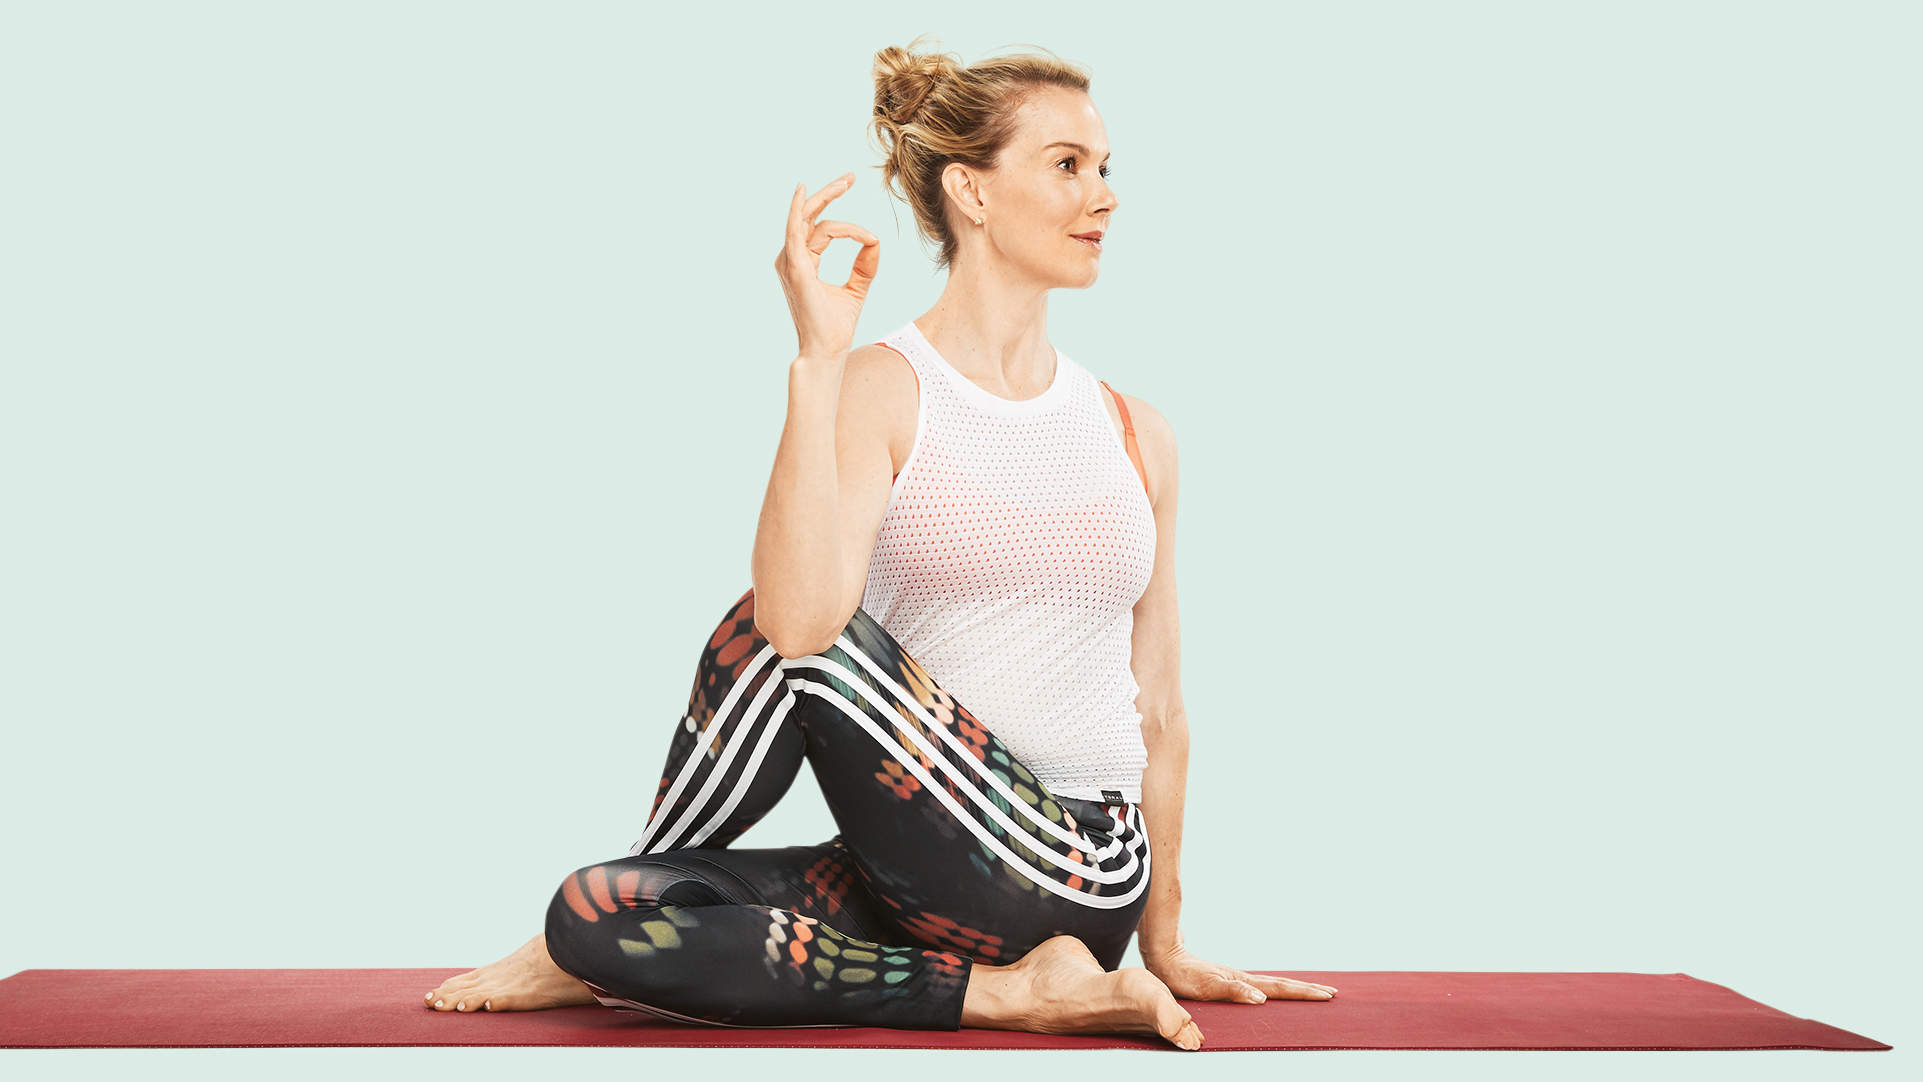 5 Yoga Poses Youre Probably Doing Wrong forecasting